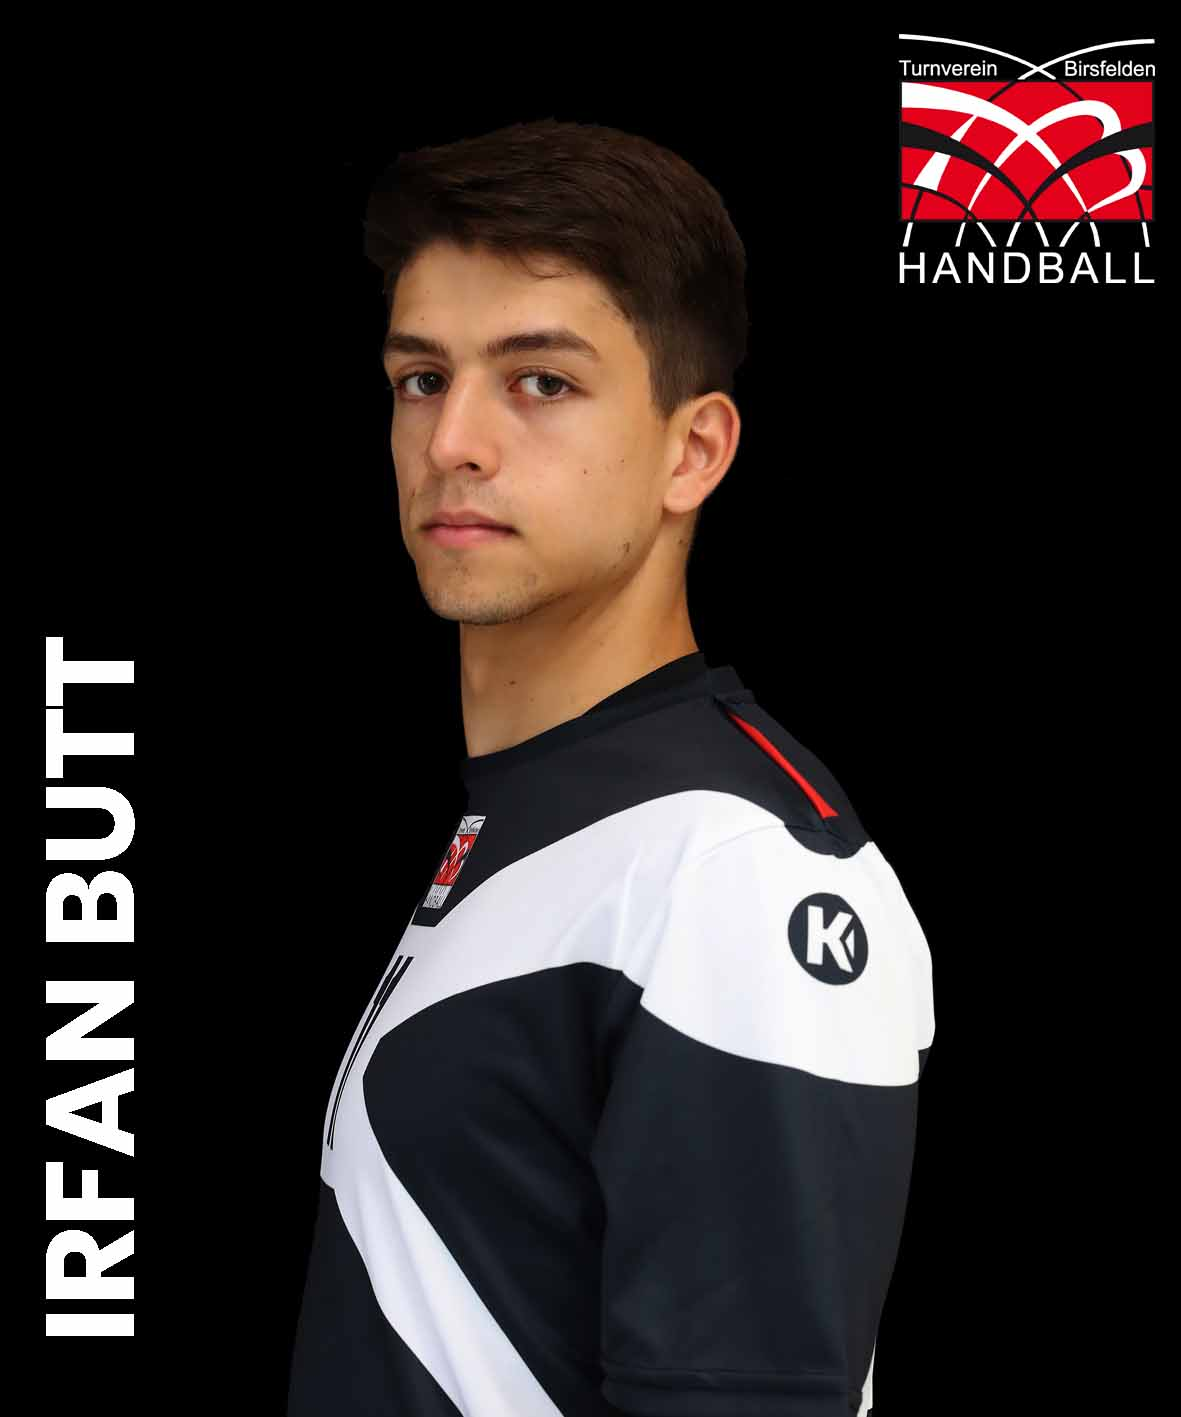 Butt Irfan 2021 NLB Portrait 2 HP